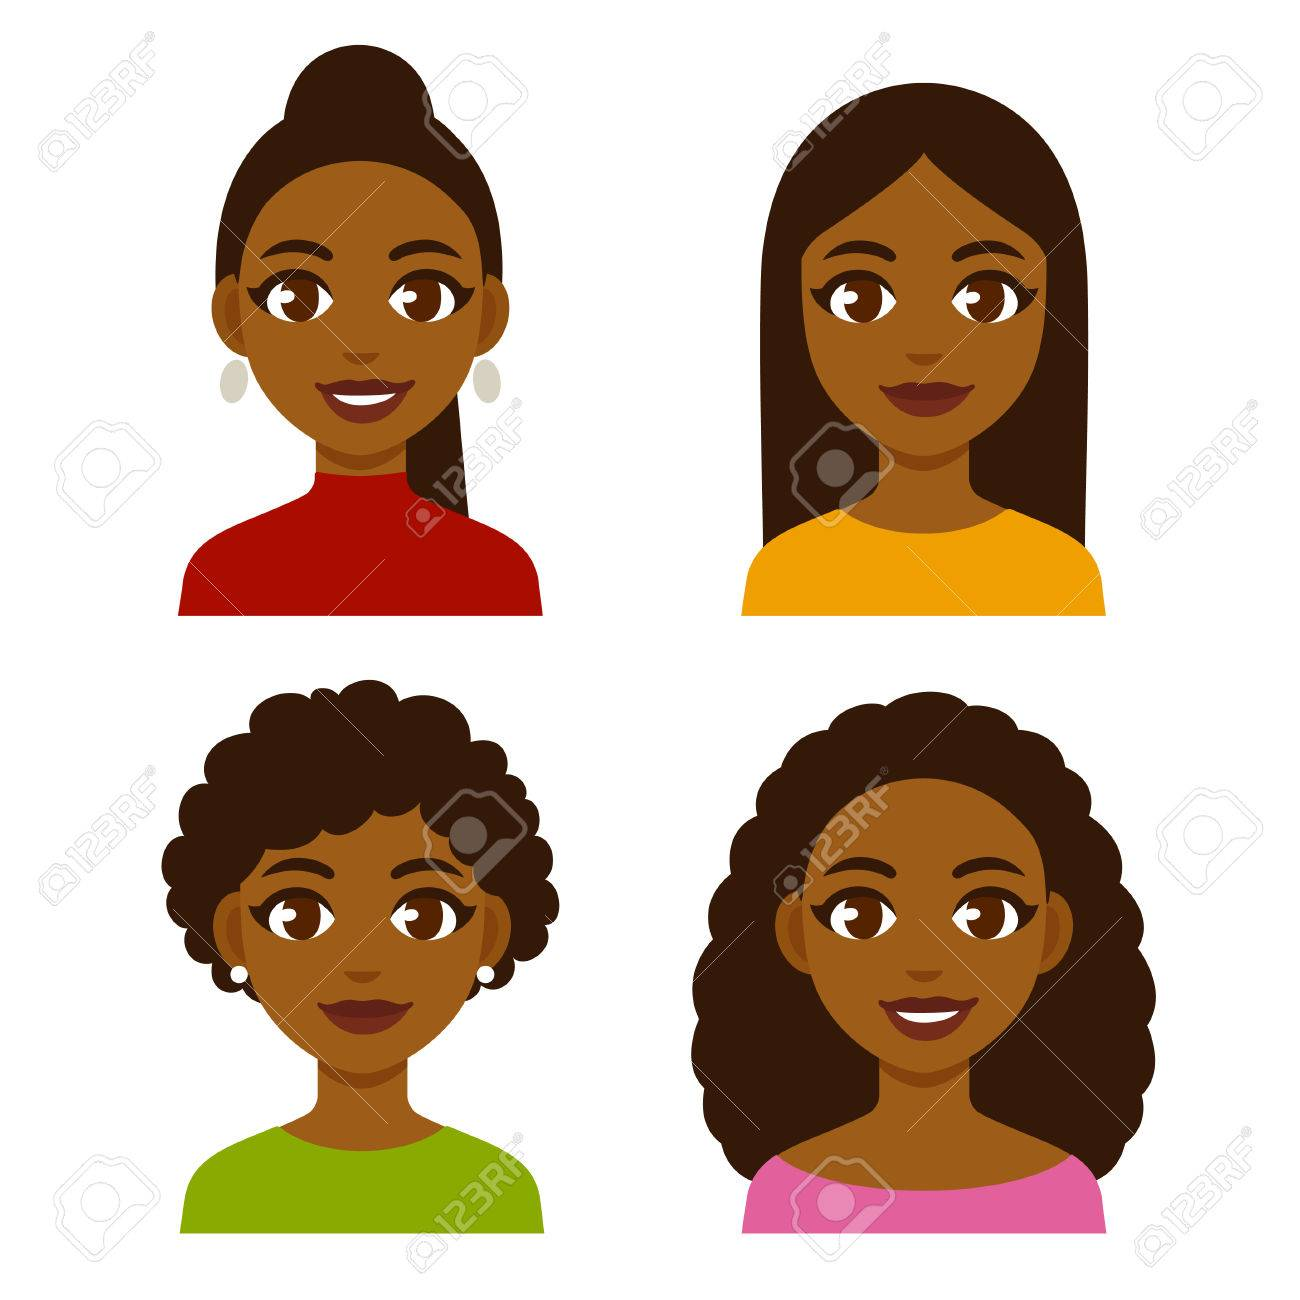 Cute cartoon black girls with natural hairstyles and straightened...